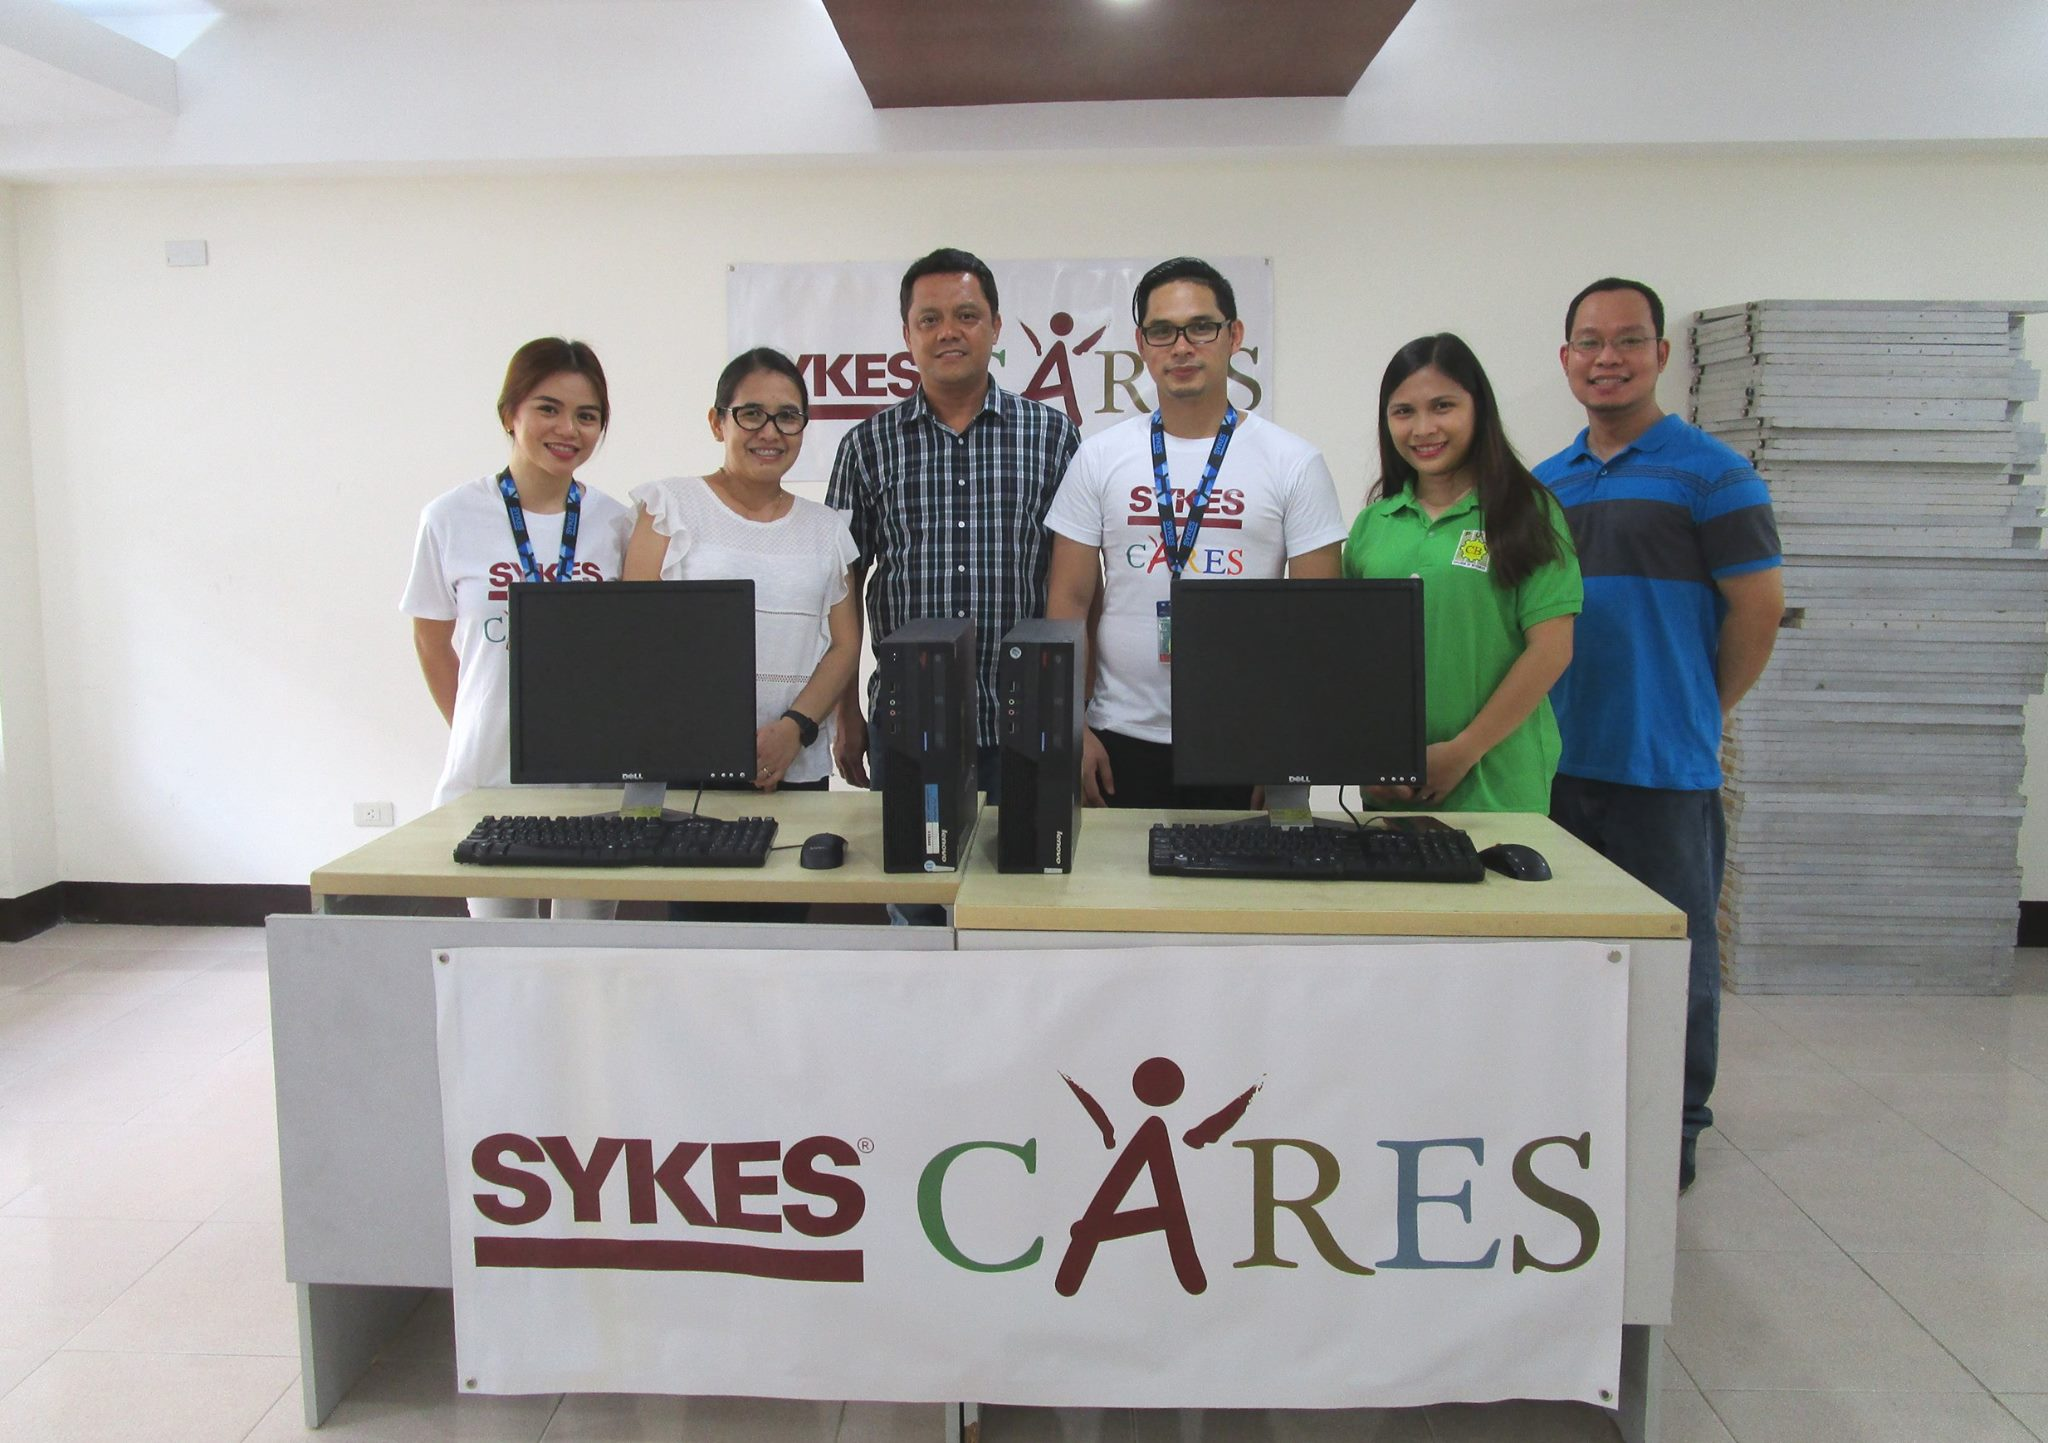 sykes-cares-pup-3